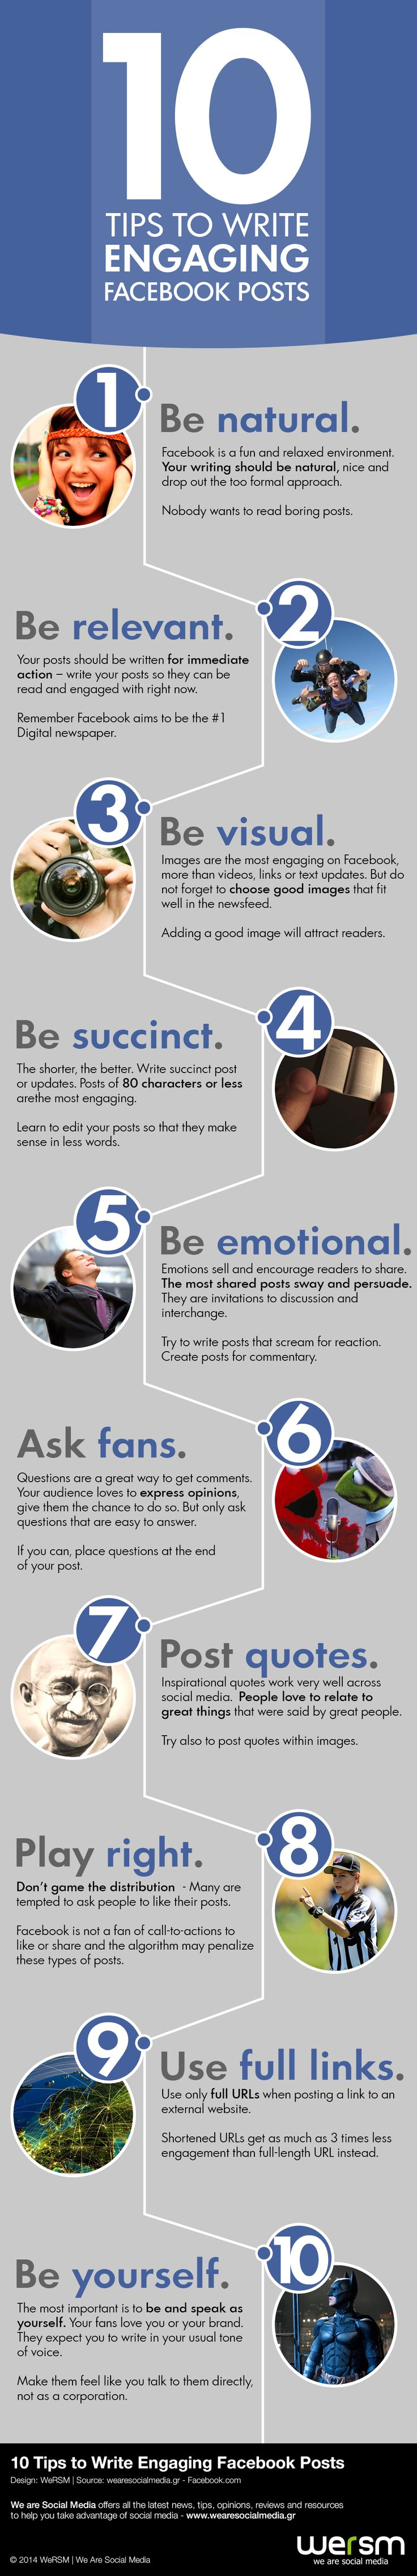 10 tips to write engaging Facebook posts #infographic